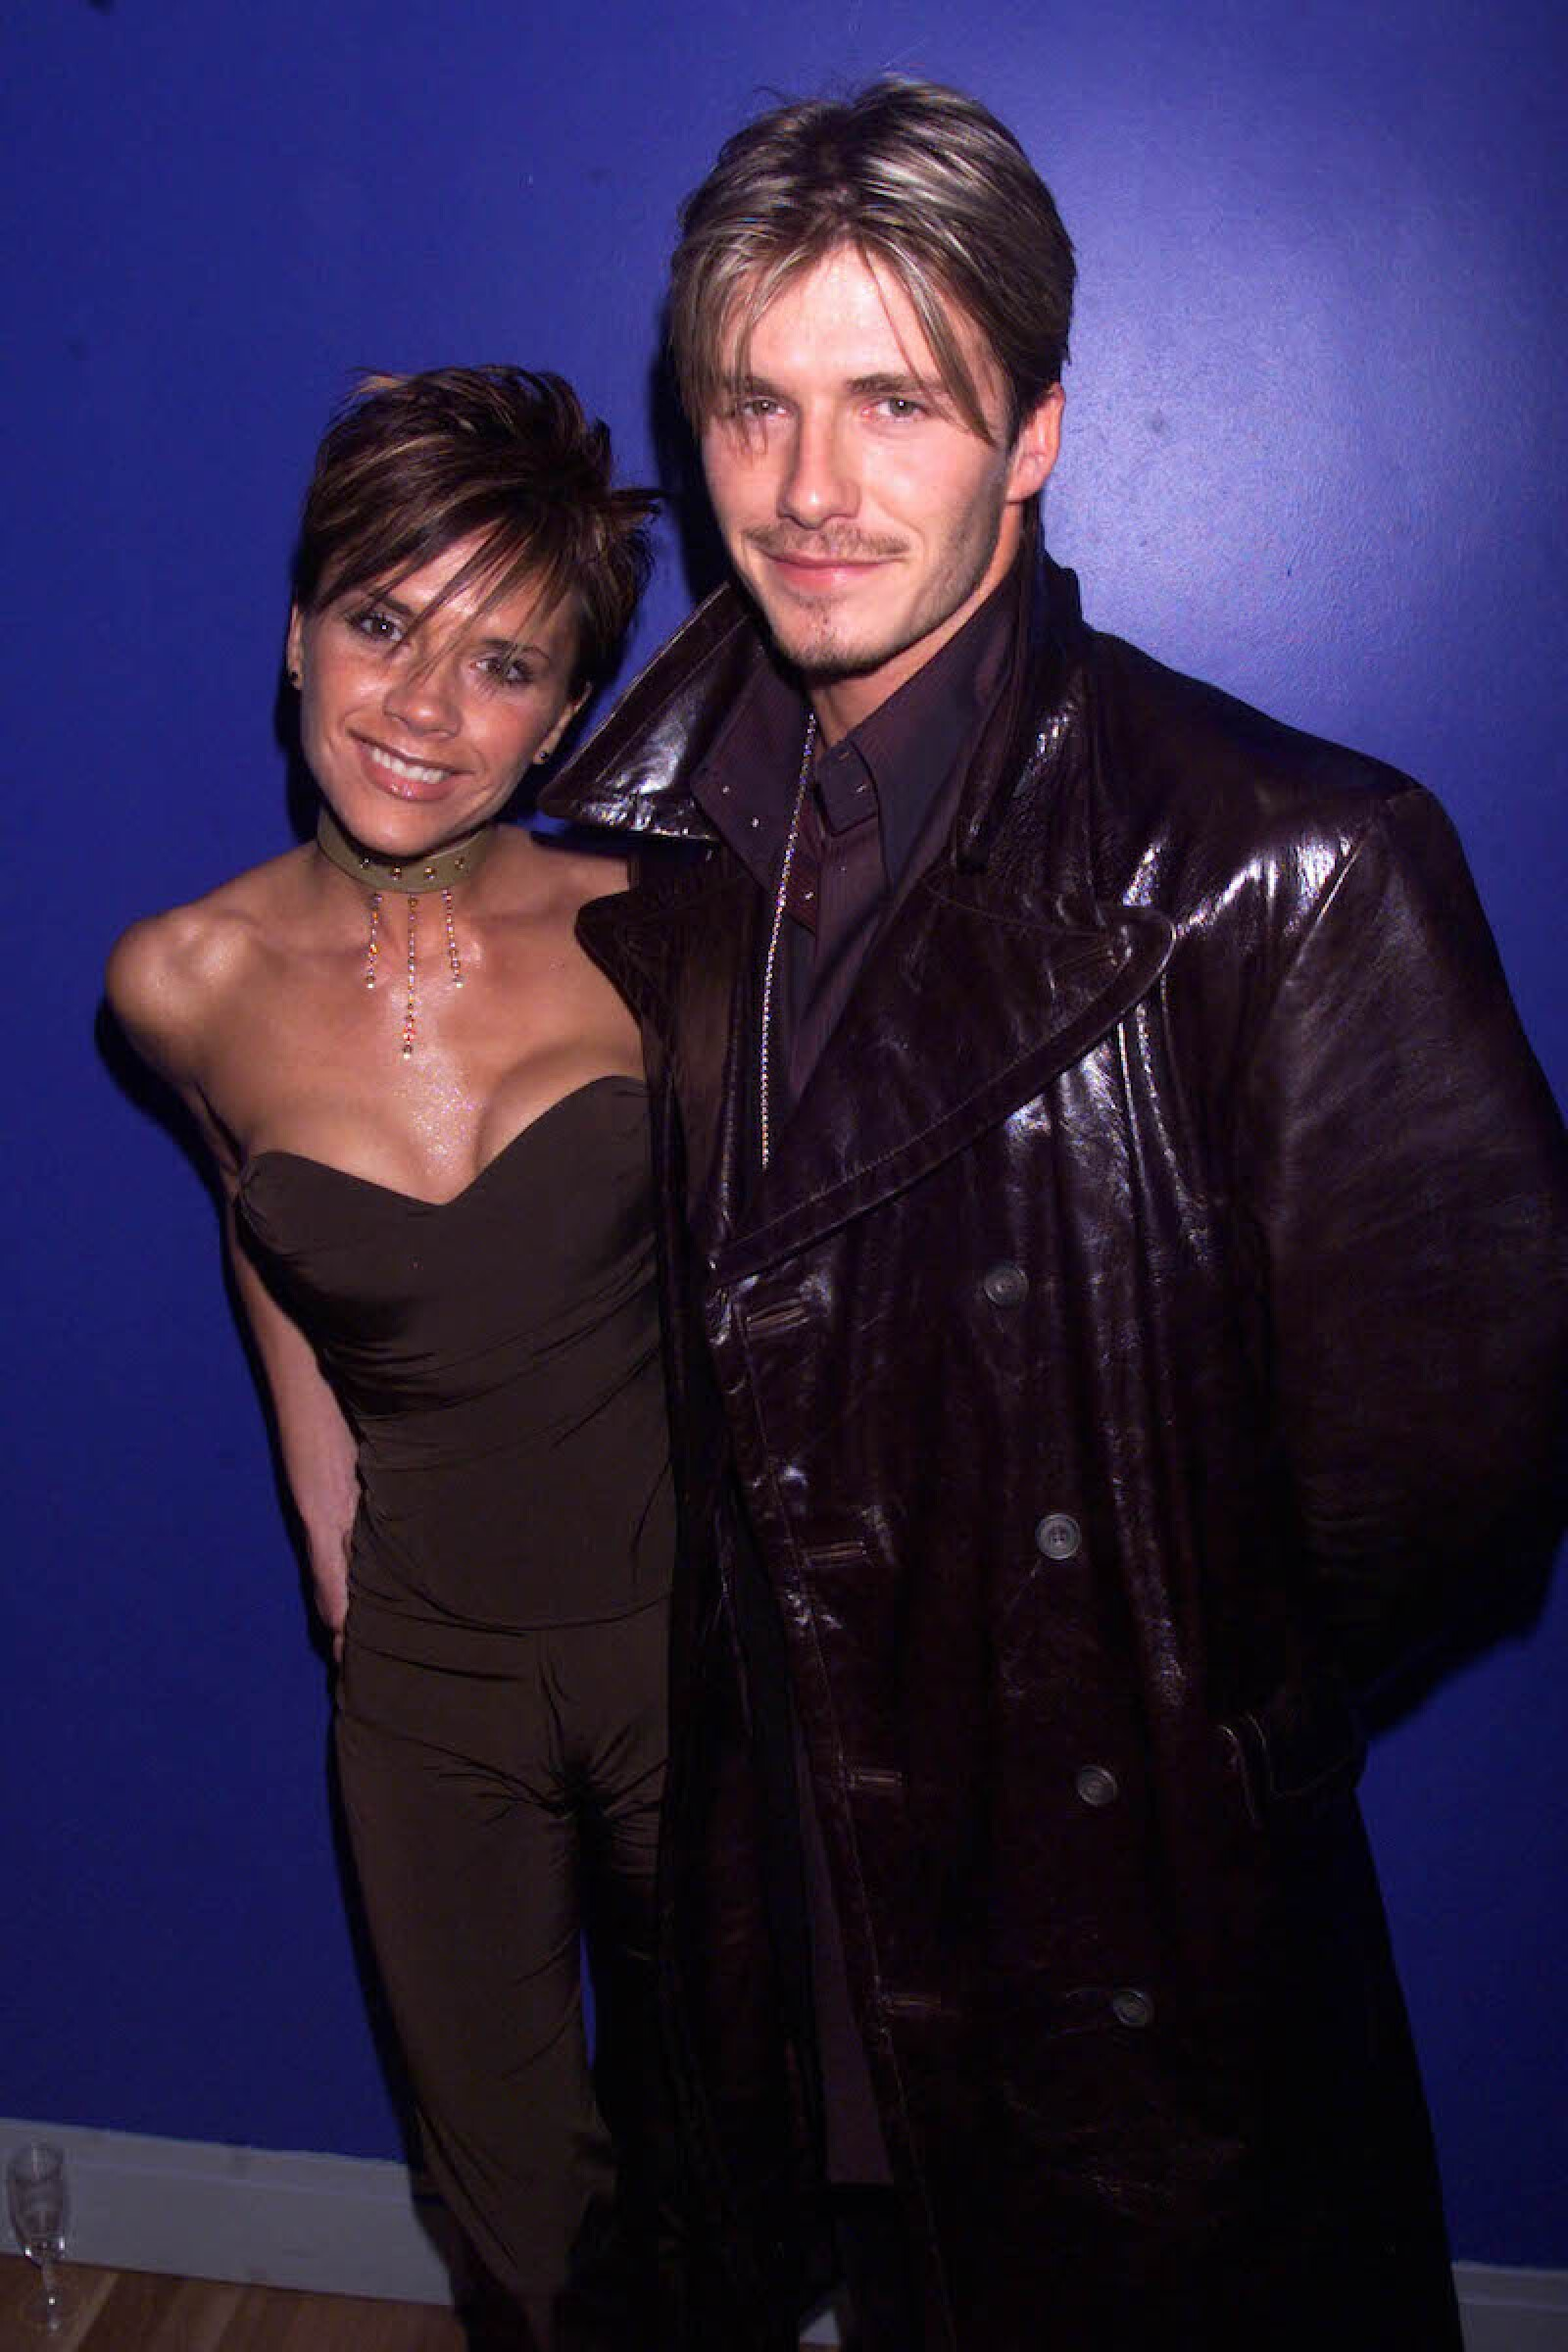 Victoria and David Beckham at the Withnail and I charity premiere